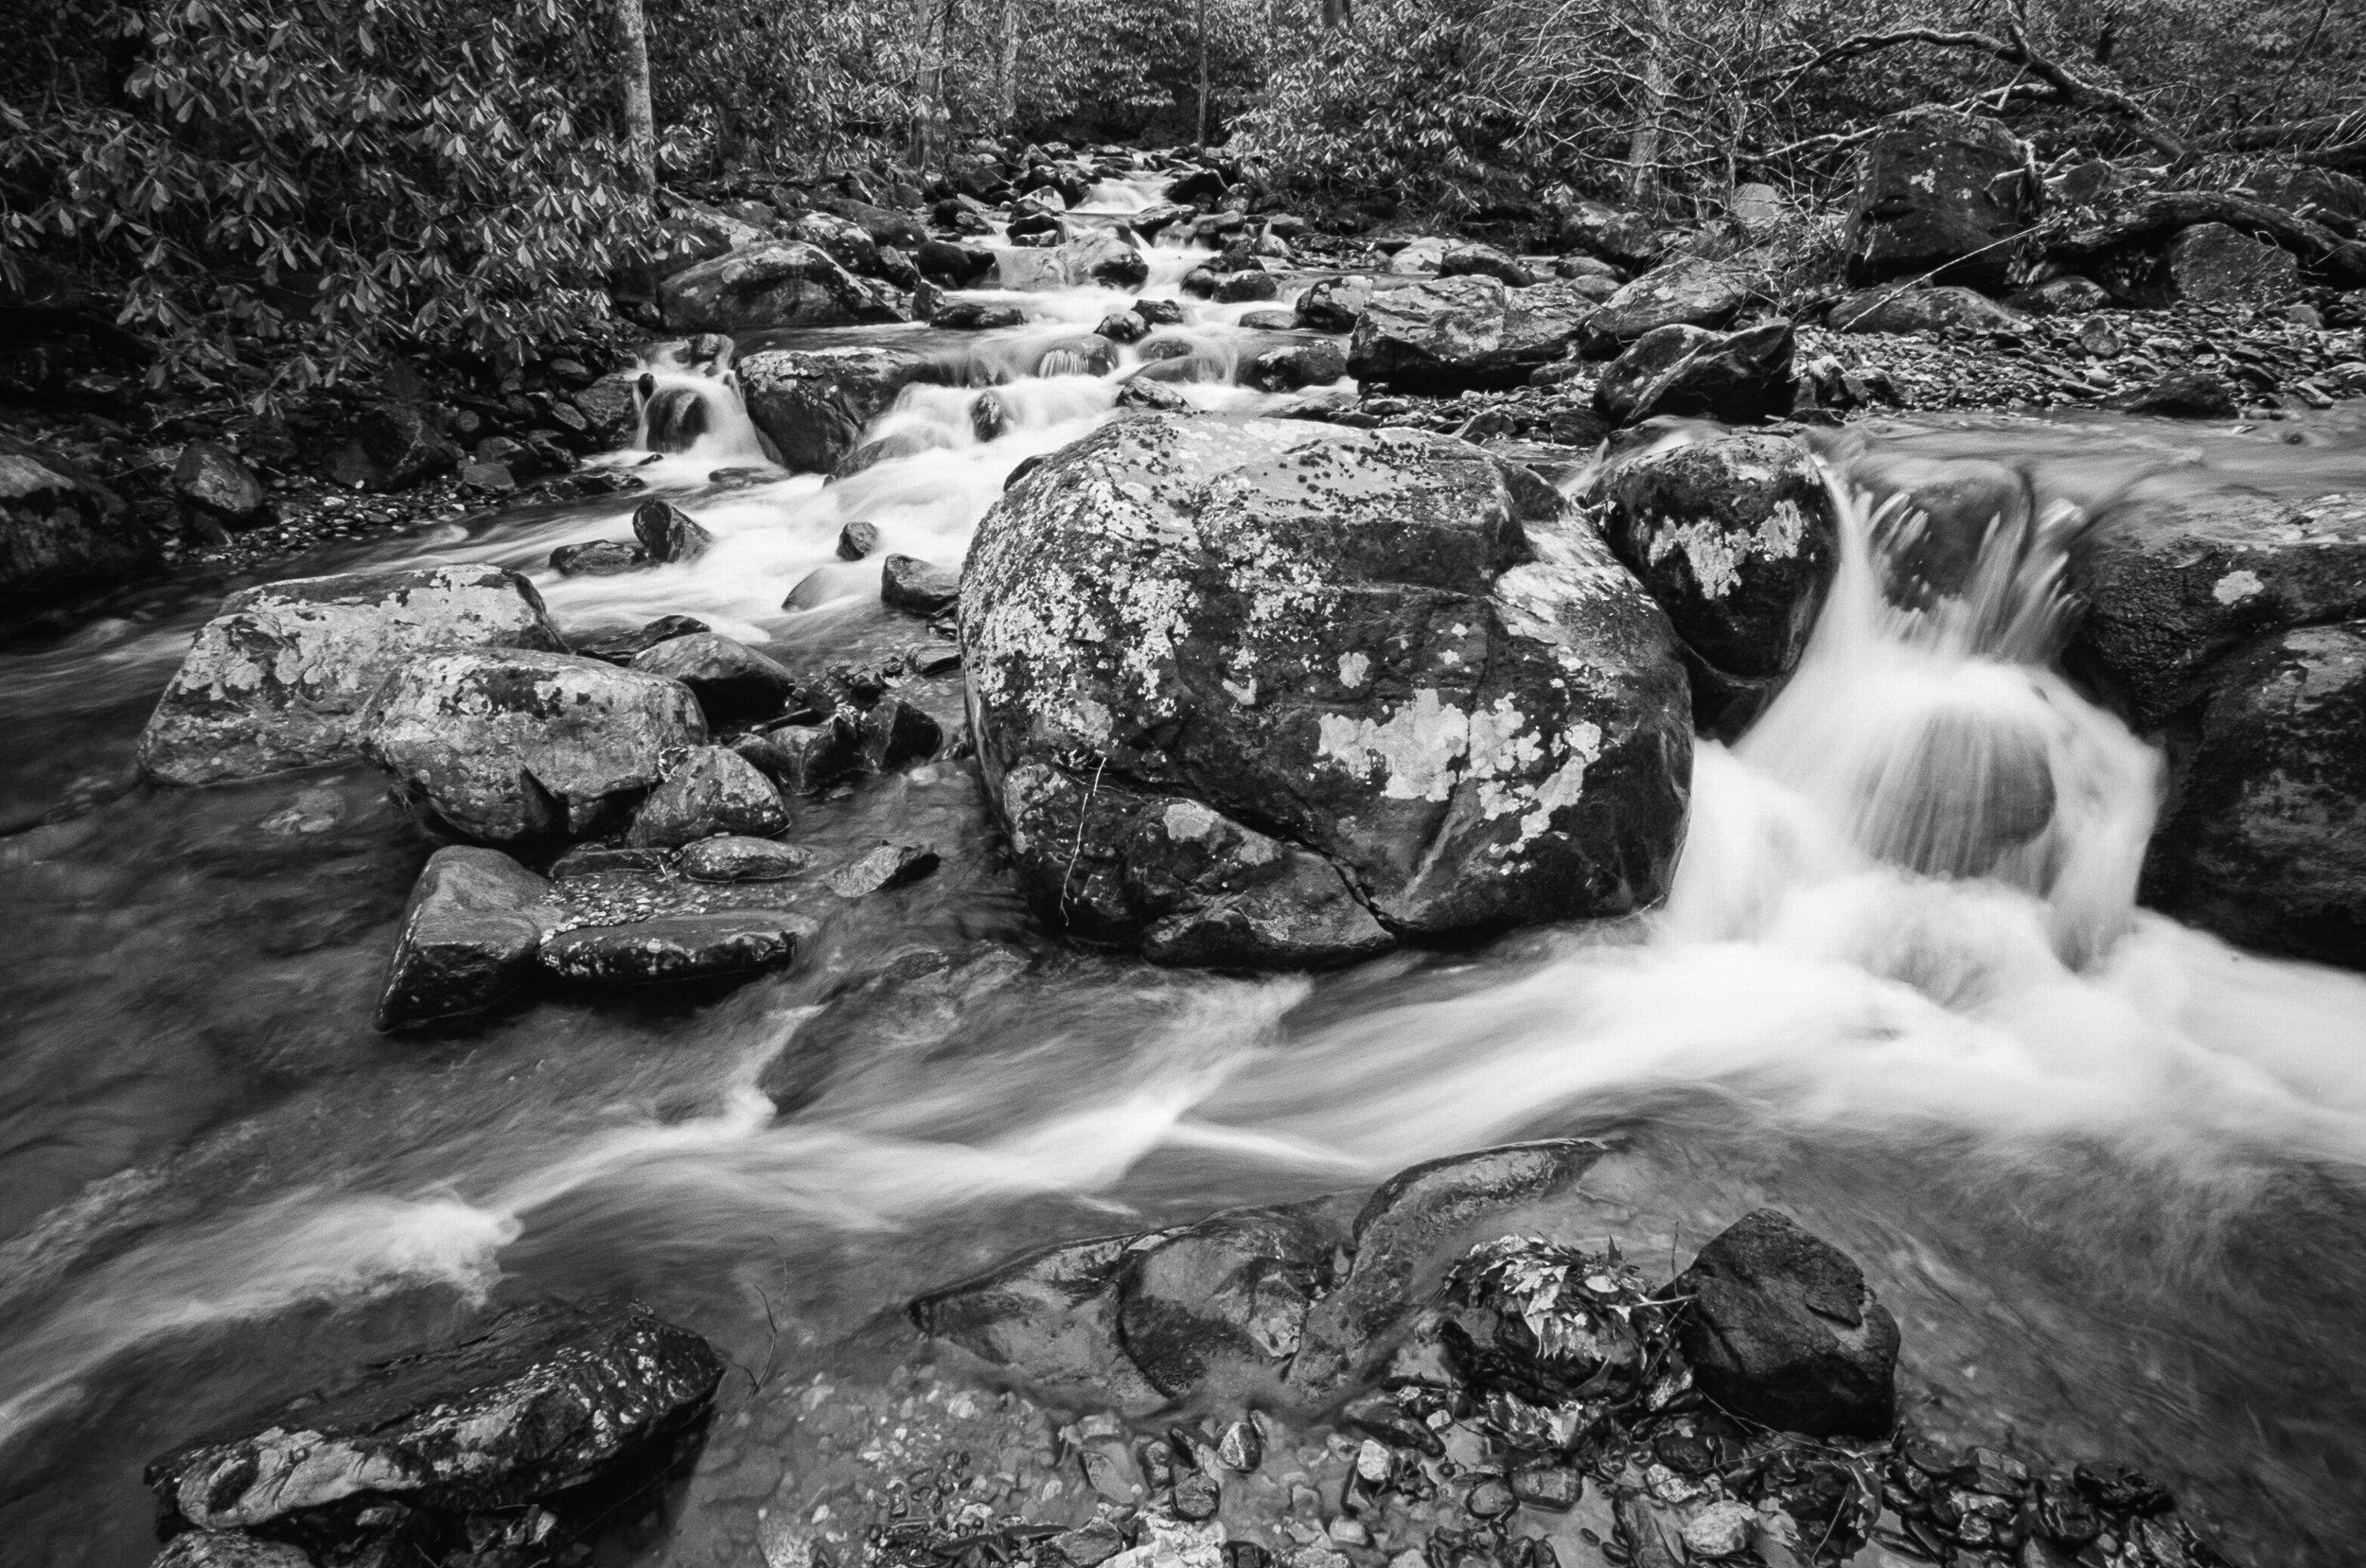 Roaring Creek on Black and White Film